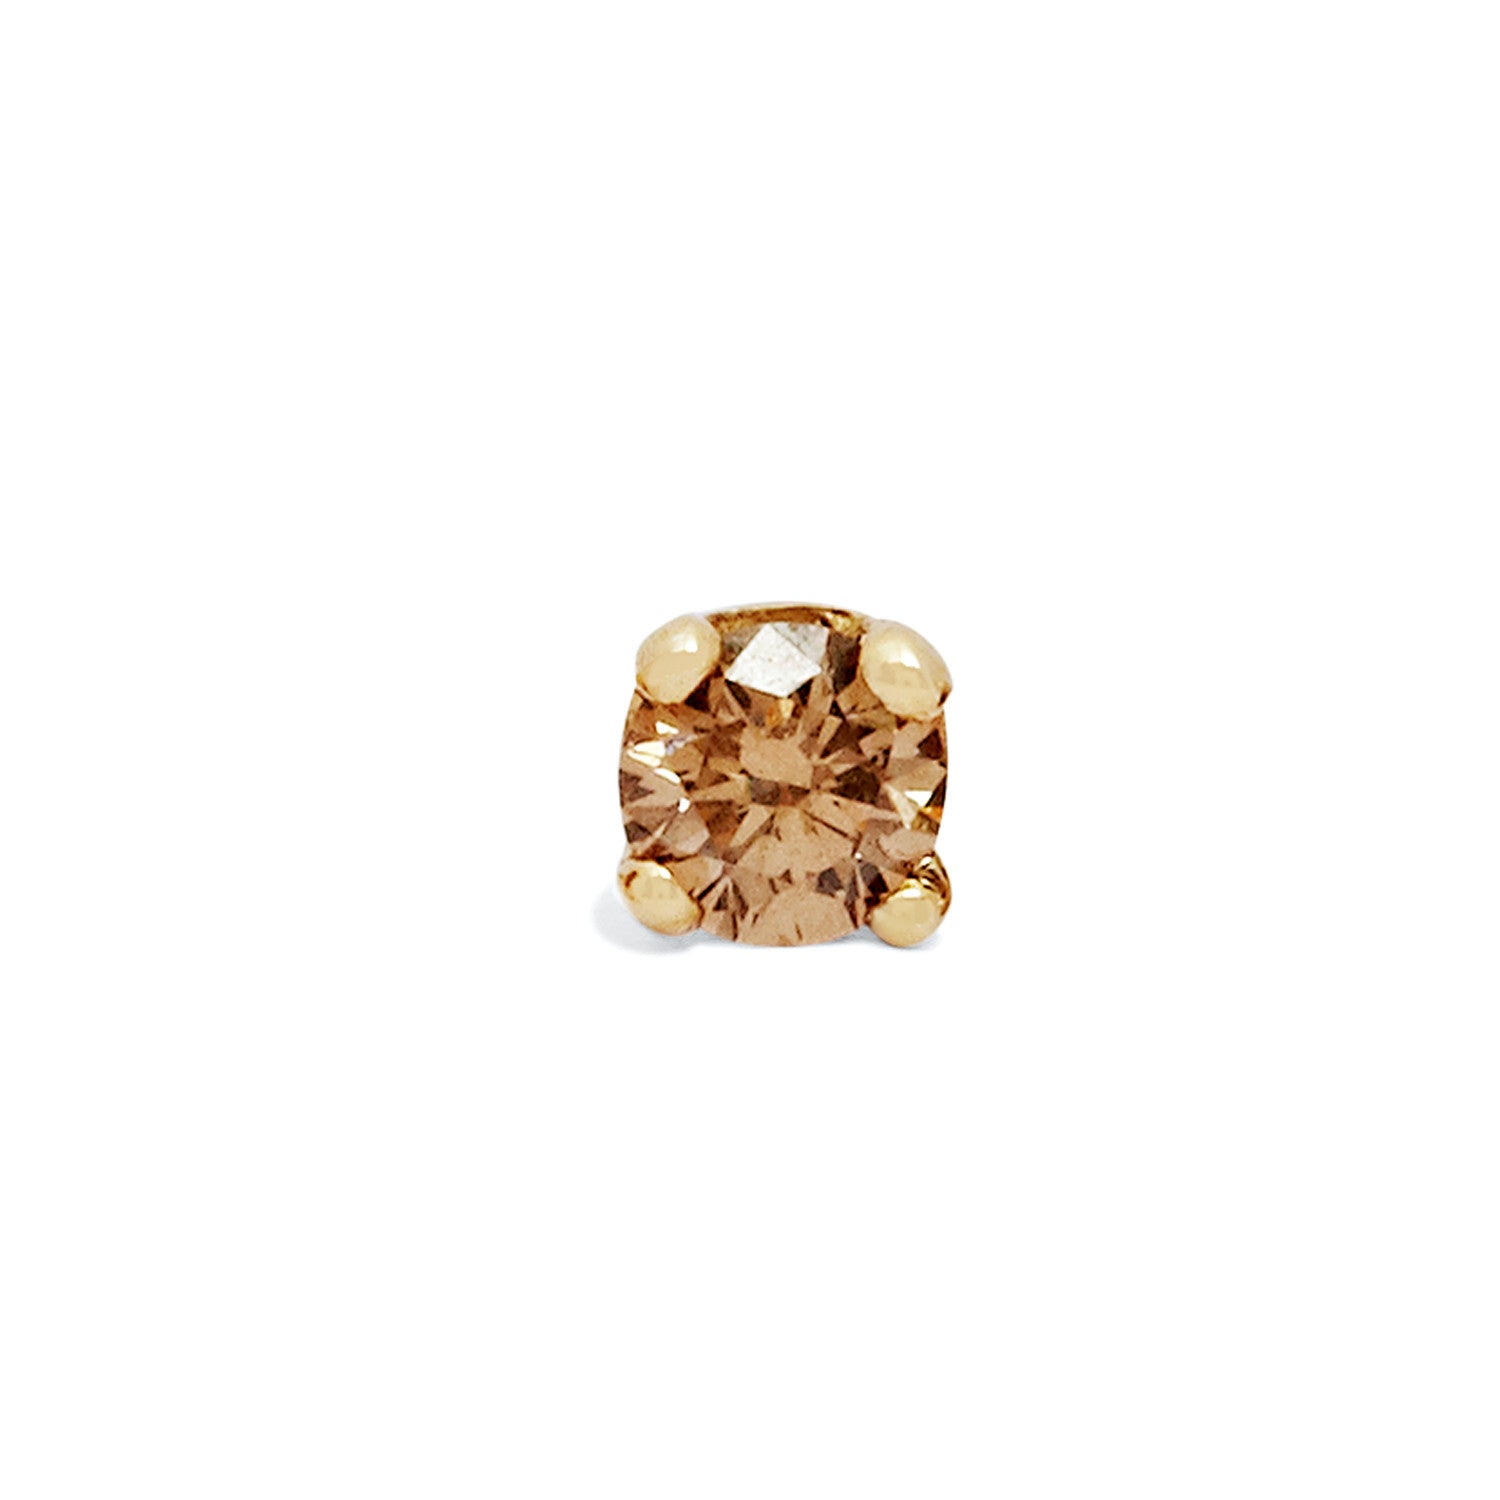 brown white overstock round prong h gold today certified fdfa free earrings jewelry stud tdw product shipping watches diamond i